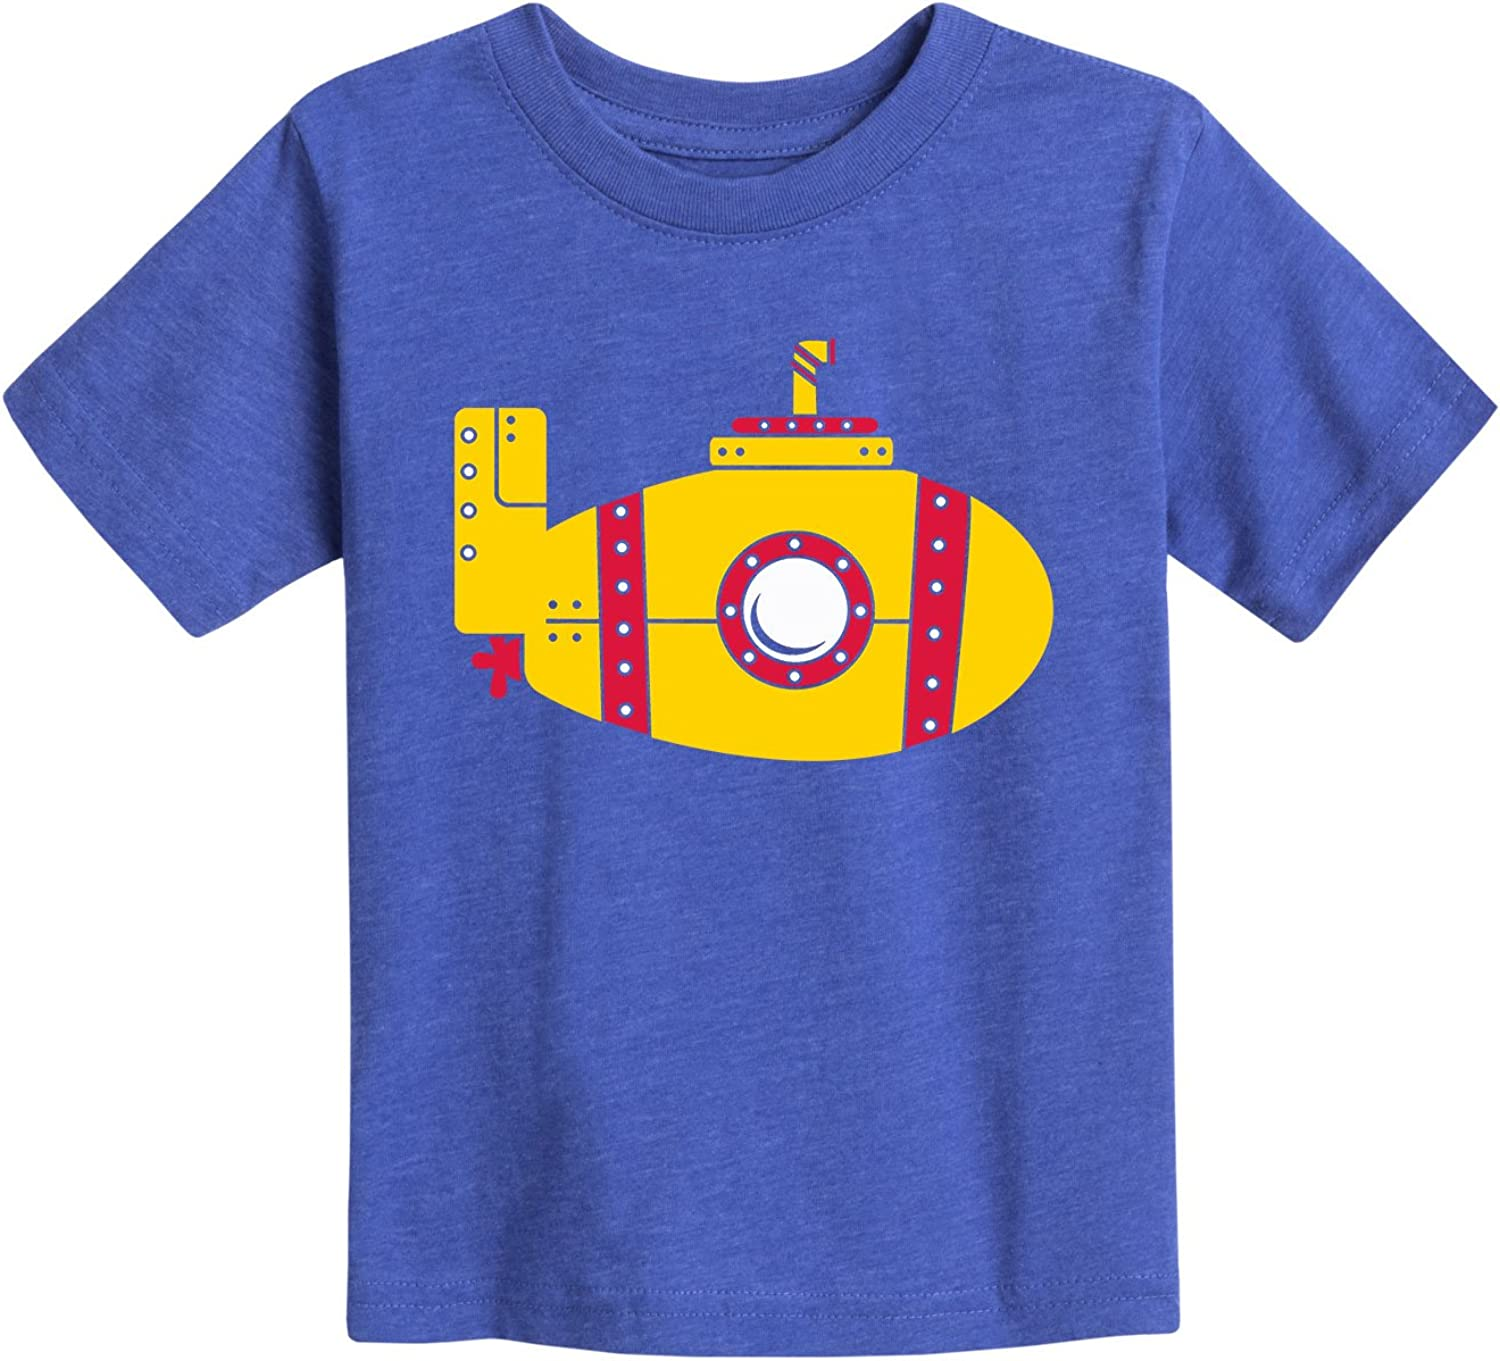 Beatles Magical Mystery Tour Toddler Short Sleeve T-Shirt Sizes 2T 3T 4T